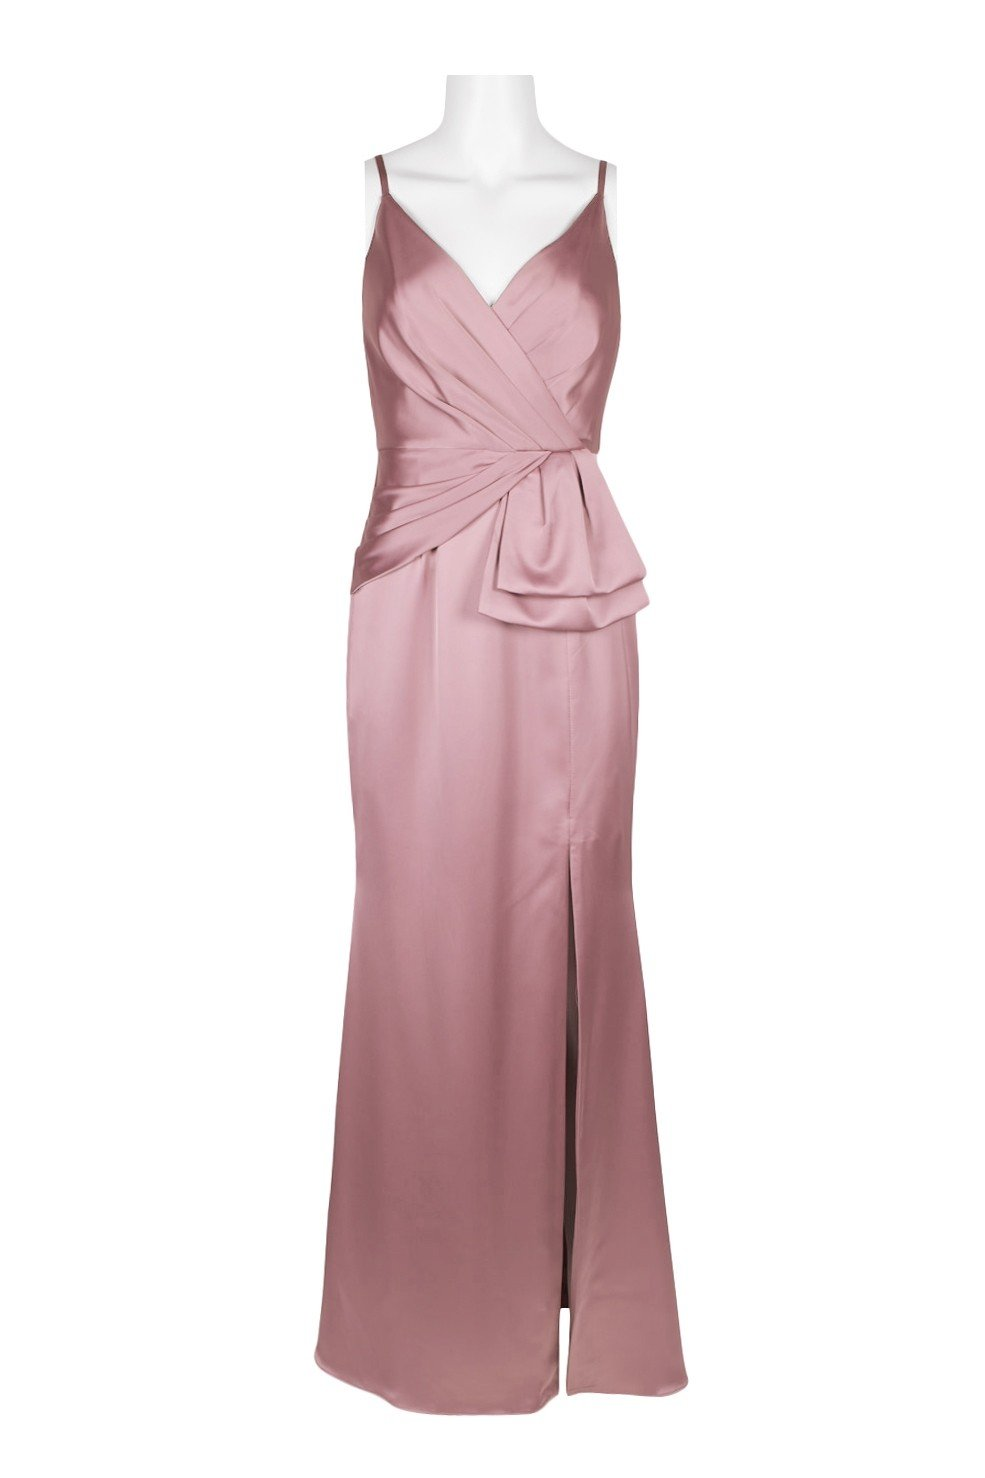 Adrianna Papell - AP1E204704 Pleated V-neck Satin Sheath Dress In Pink